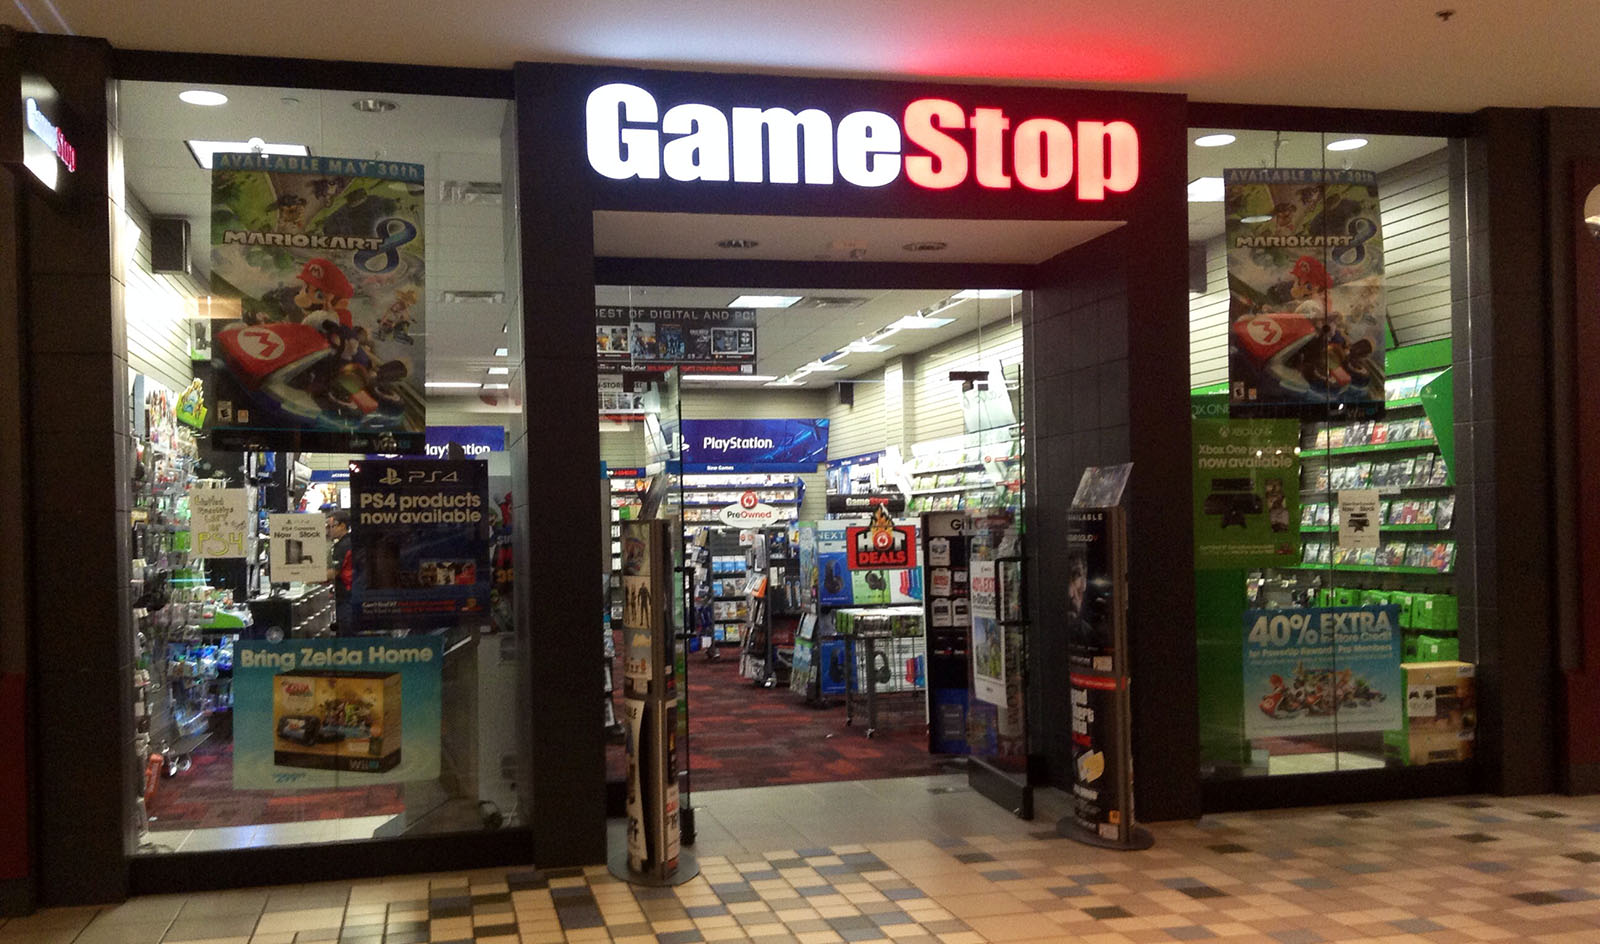 gamestop - photo #6